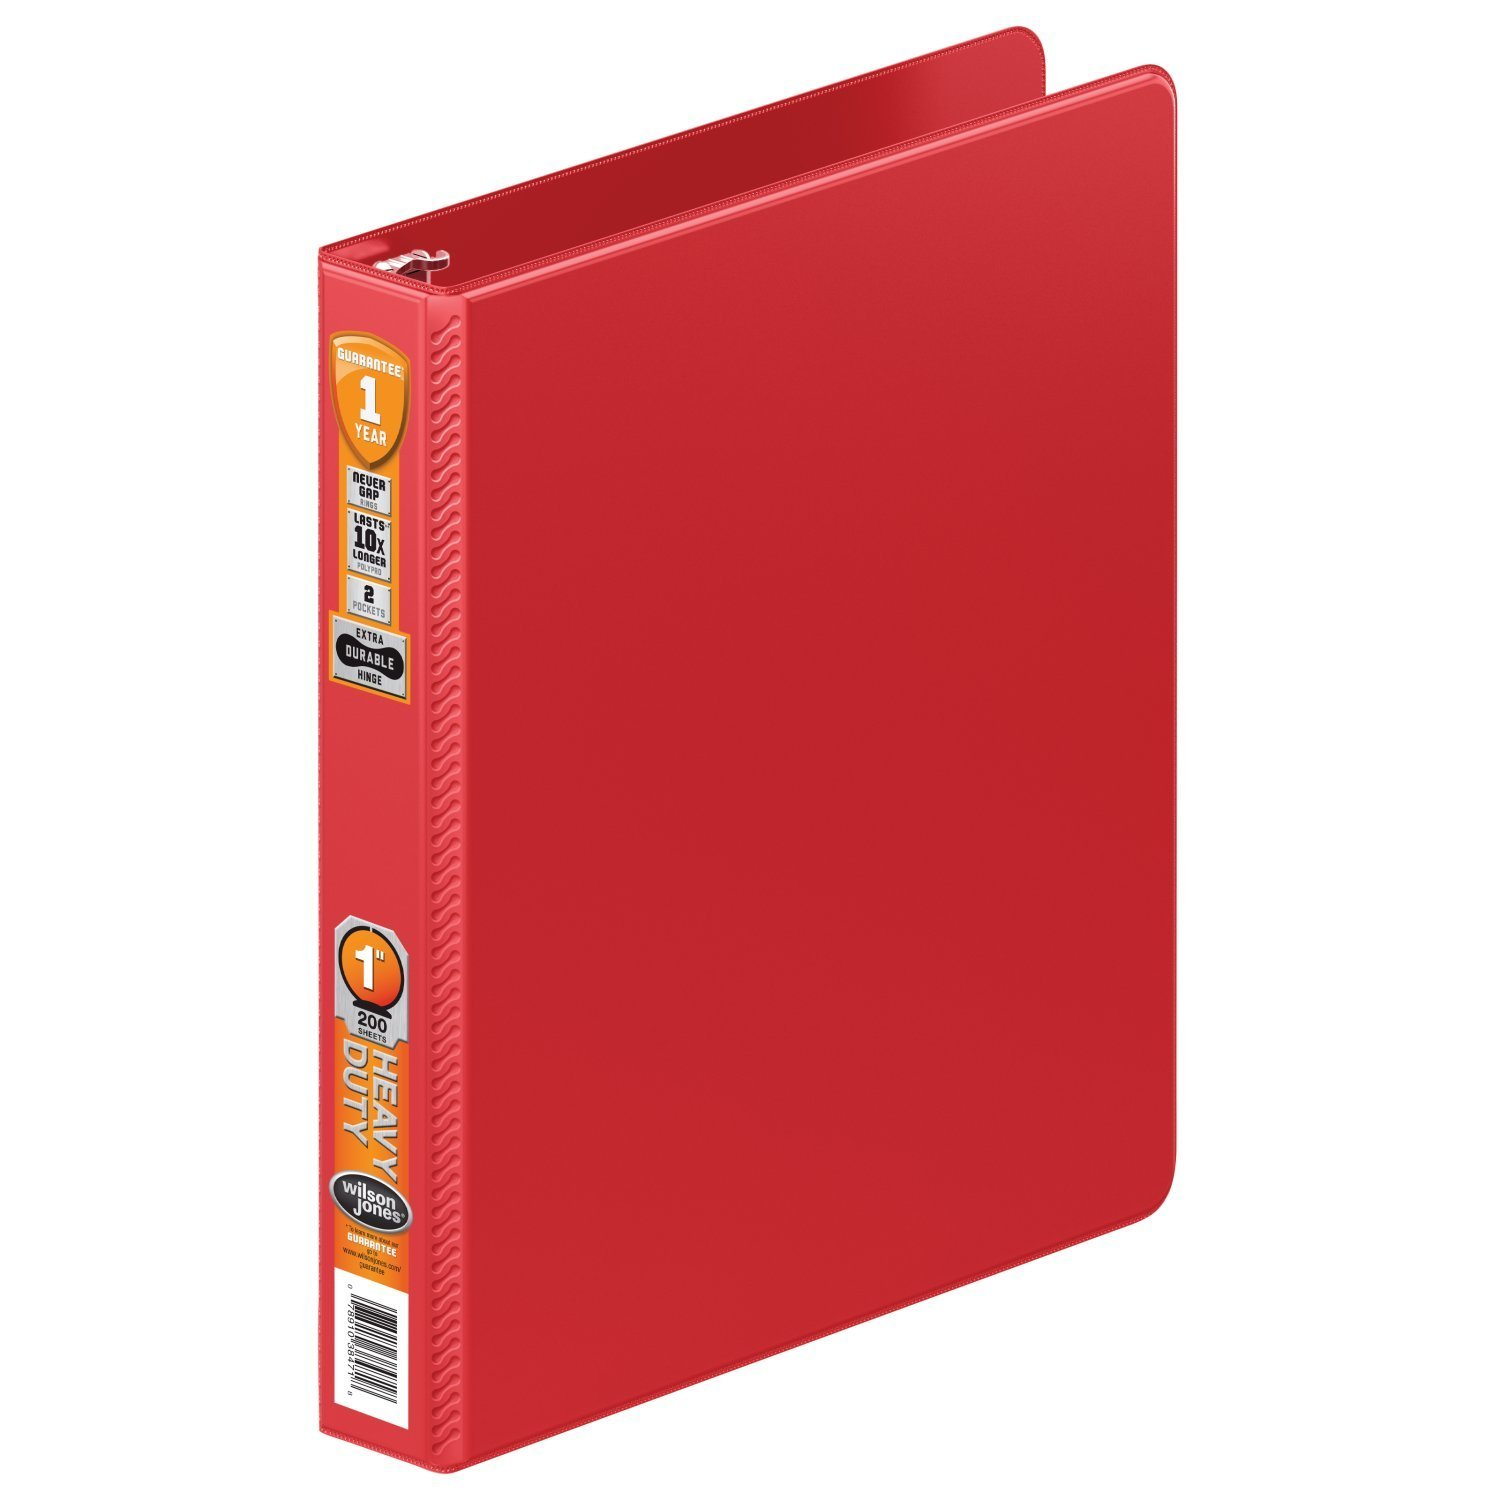 Wilson Jones Heavy Duty Round Ring Binder with Extra Durable Hinge, 1-Inch, Red (W364-14-1797)